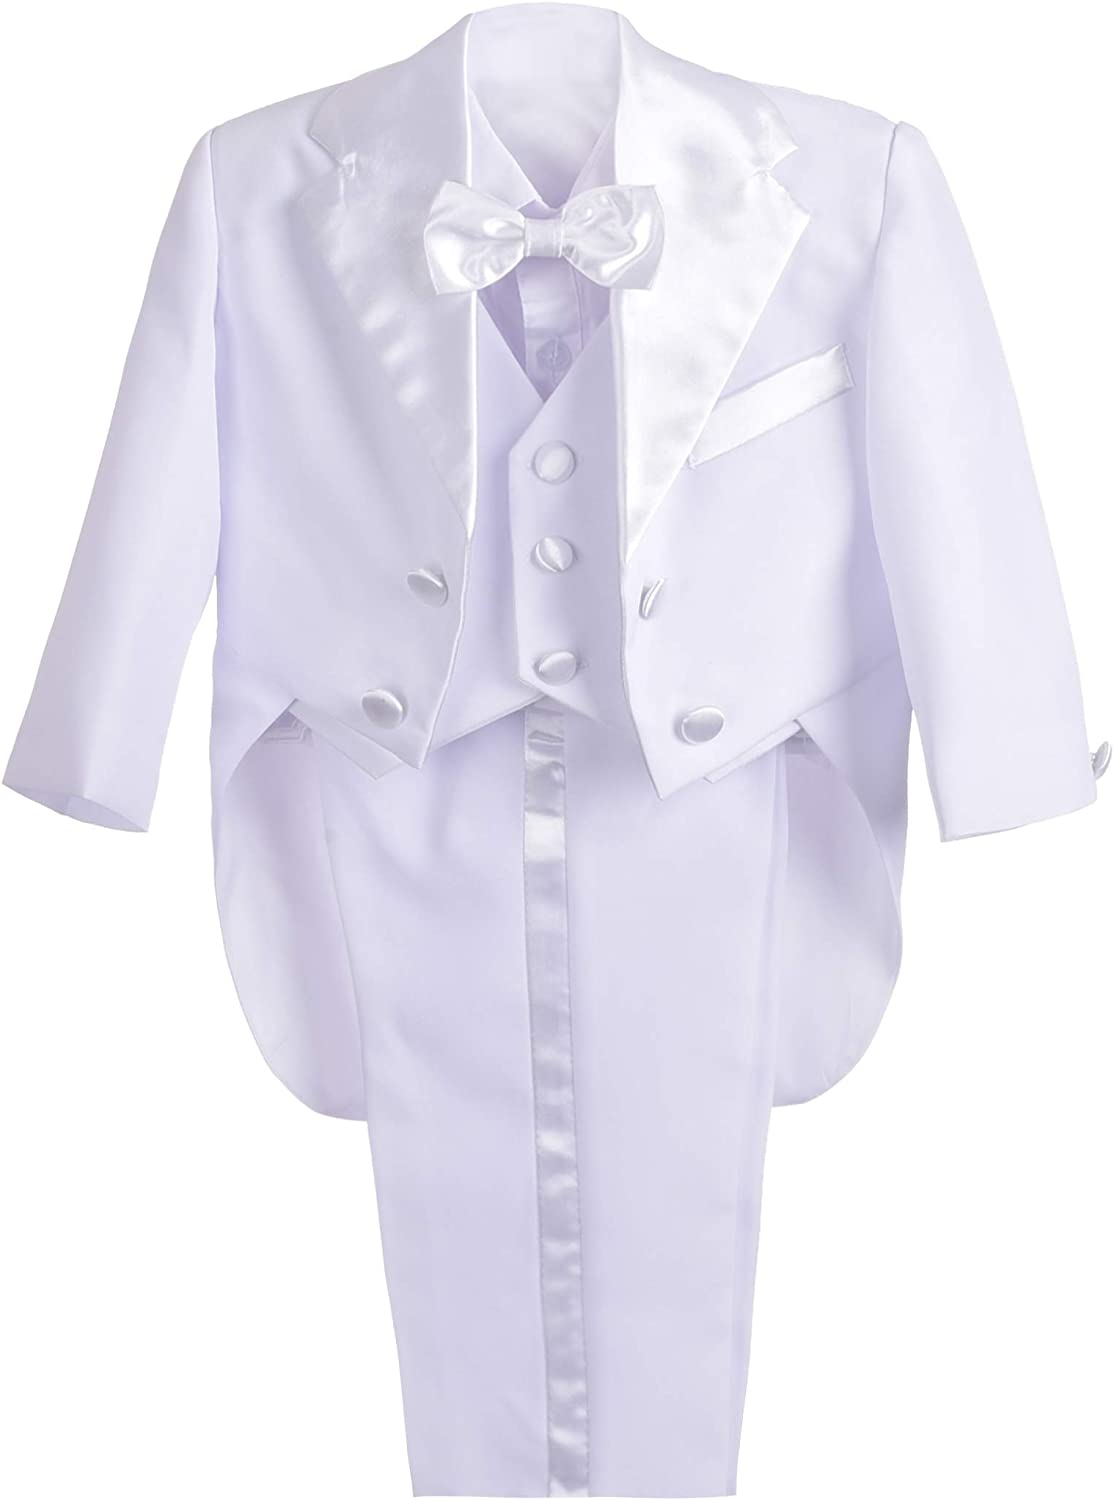 Lito Angels Baby Boys' Classic Wedding Selling and selling Outfits Tuxedo with Tail At the price